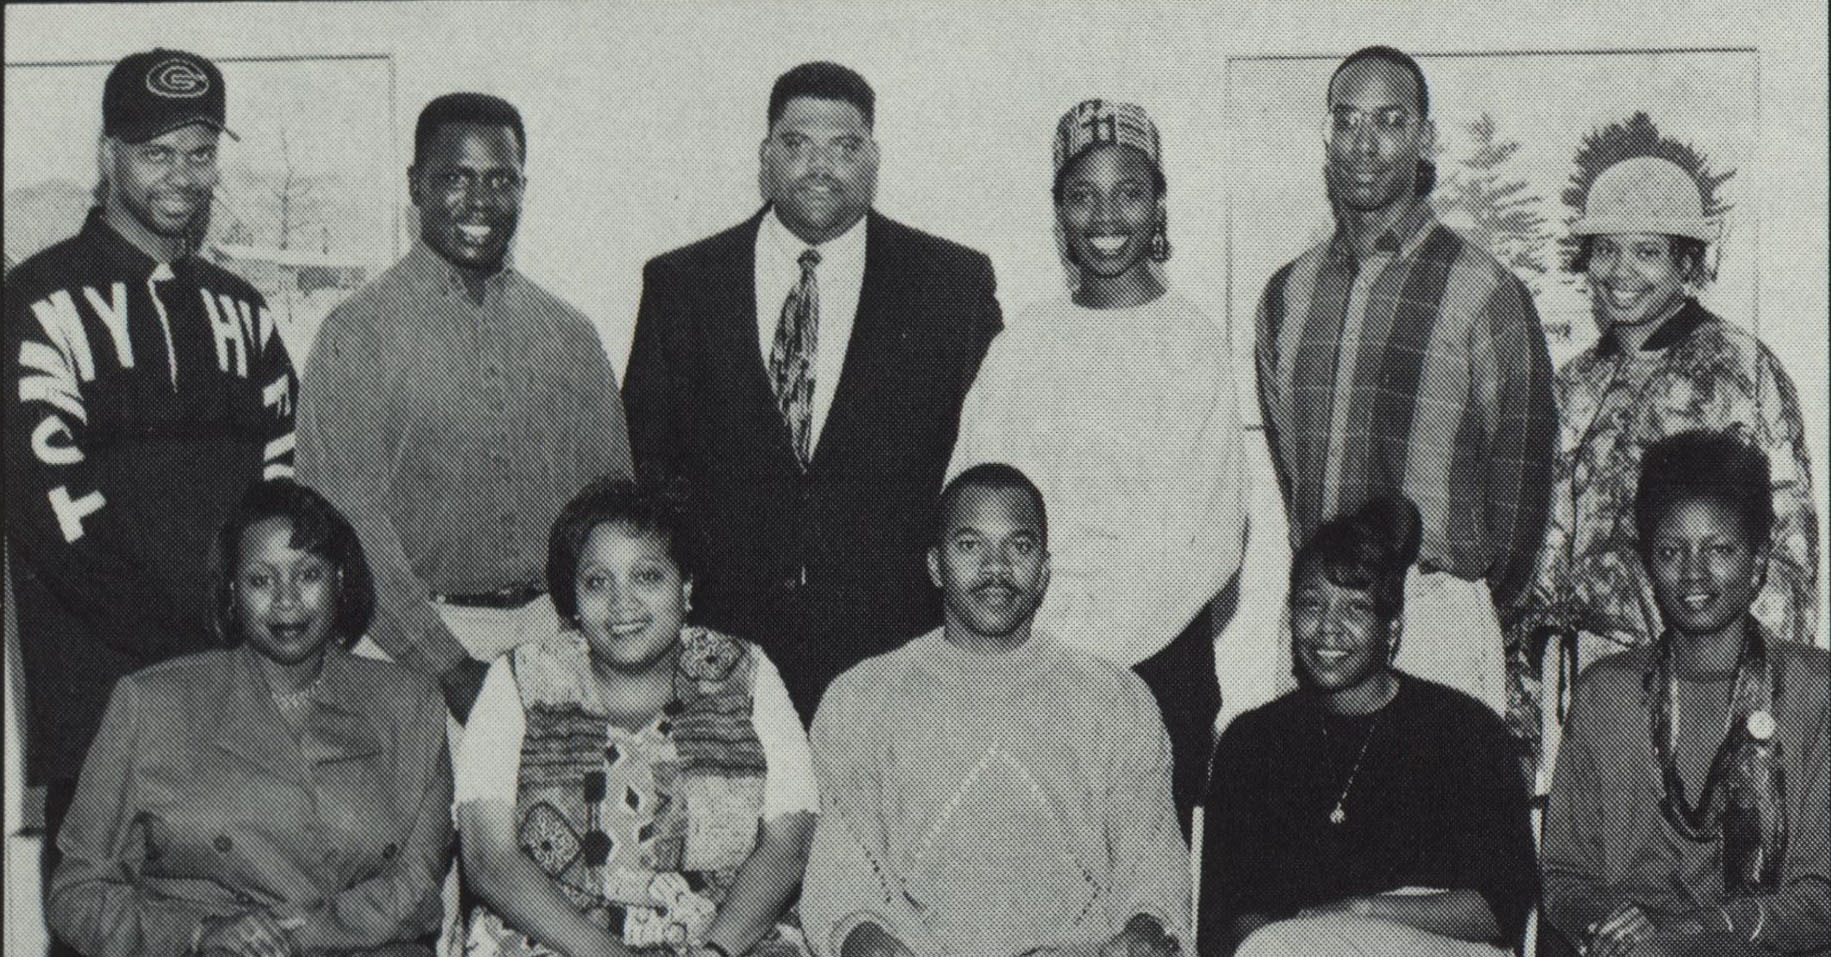 http://spec.lib.vt.edu/pickup/Omeka_upload/BlackGraduateStudentOrganization_1995.jpg